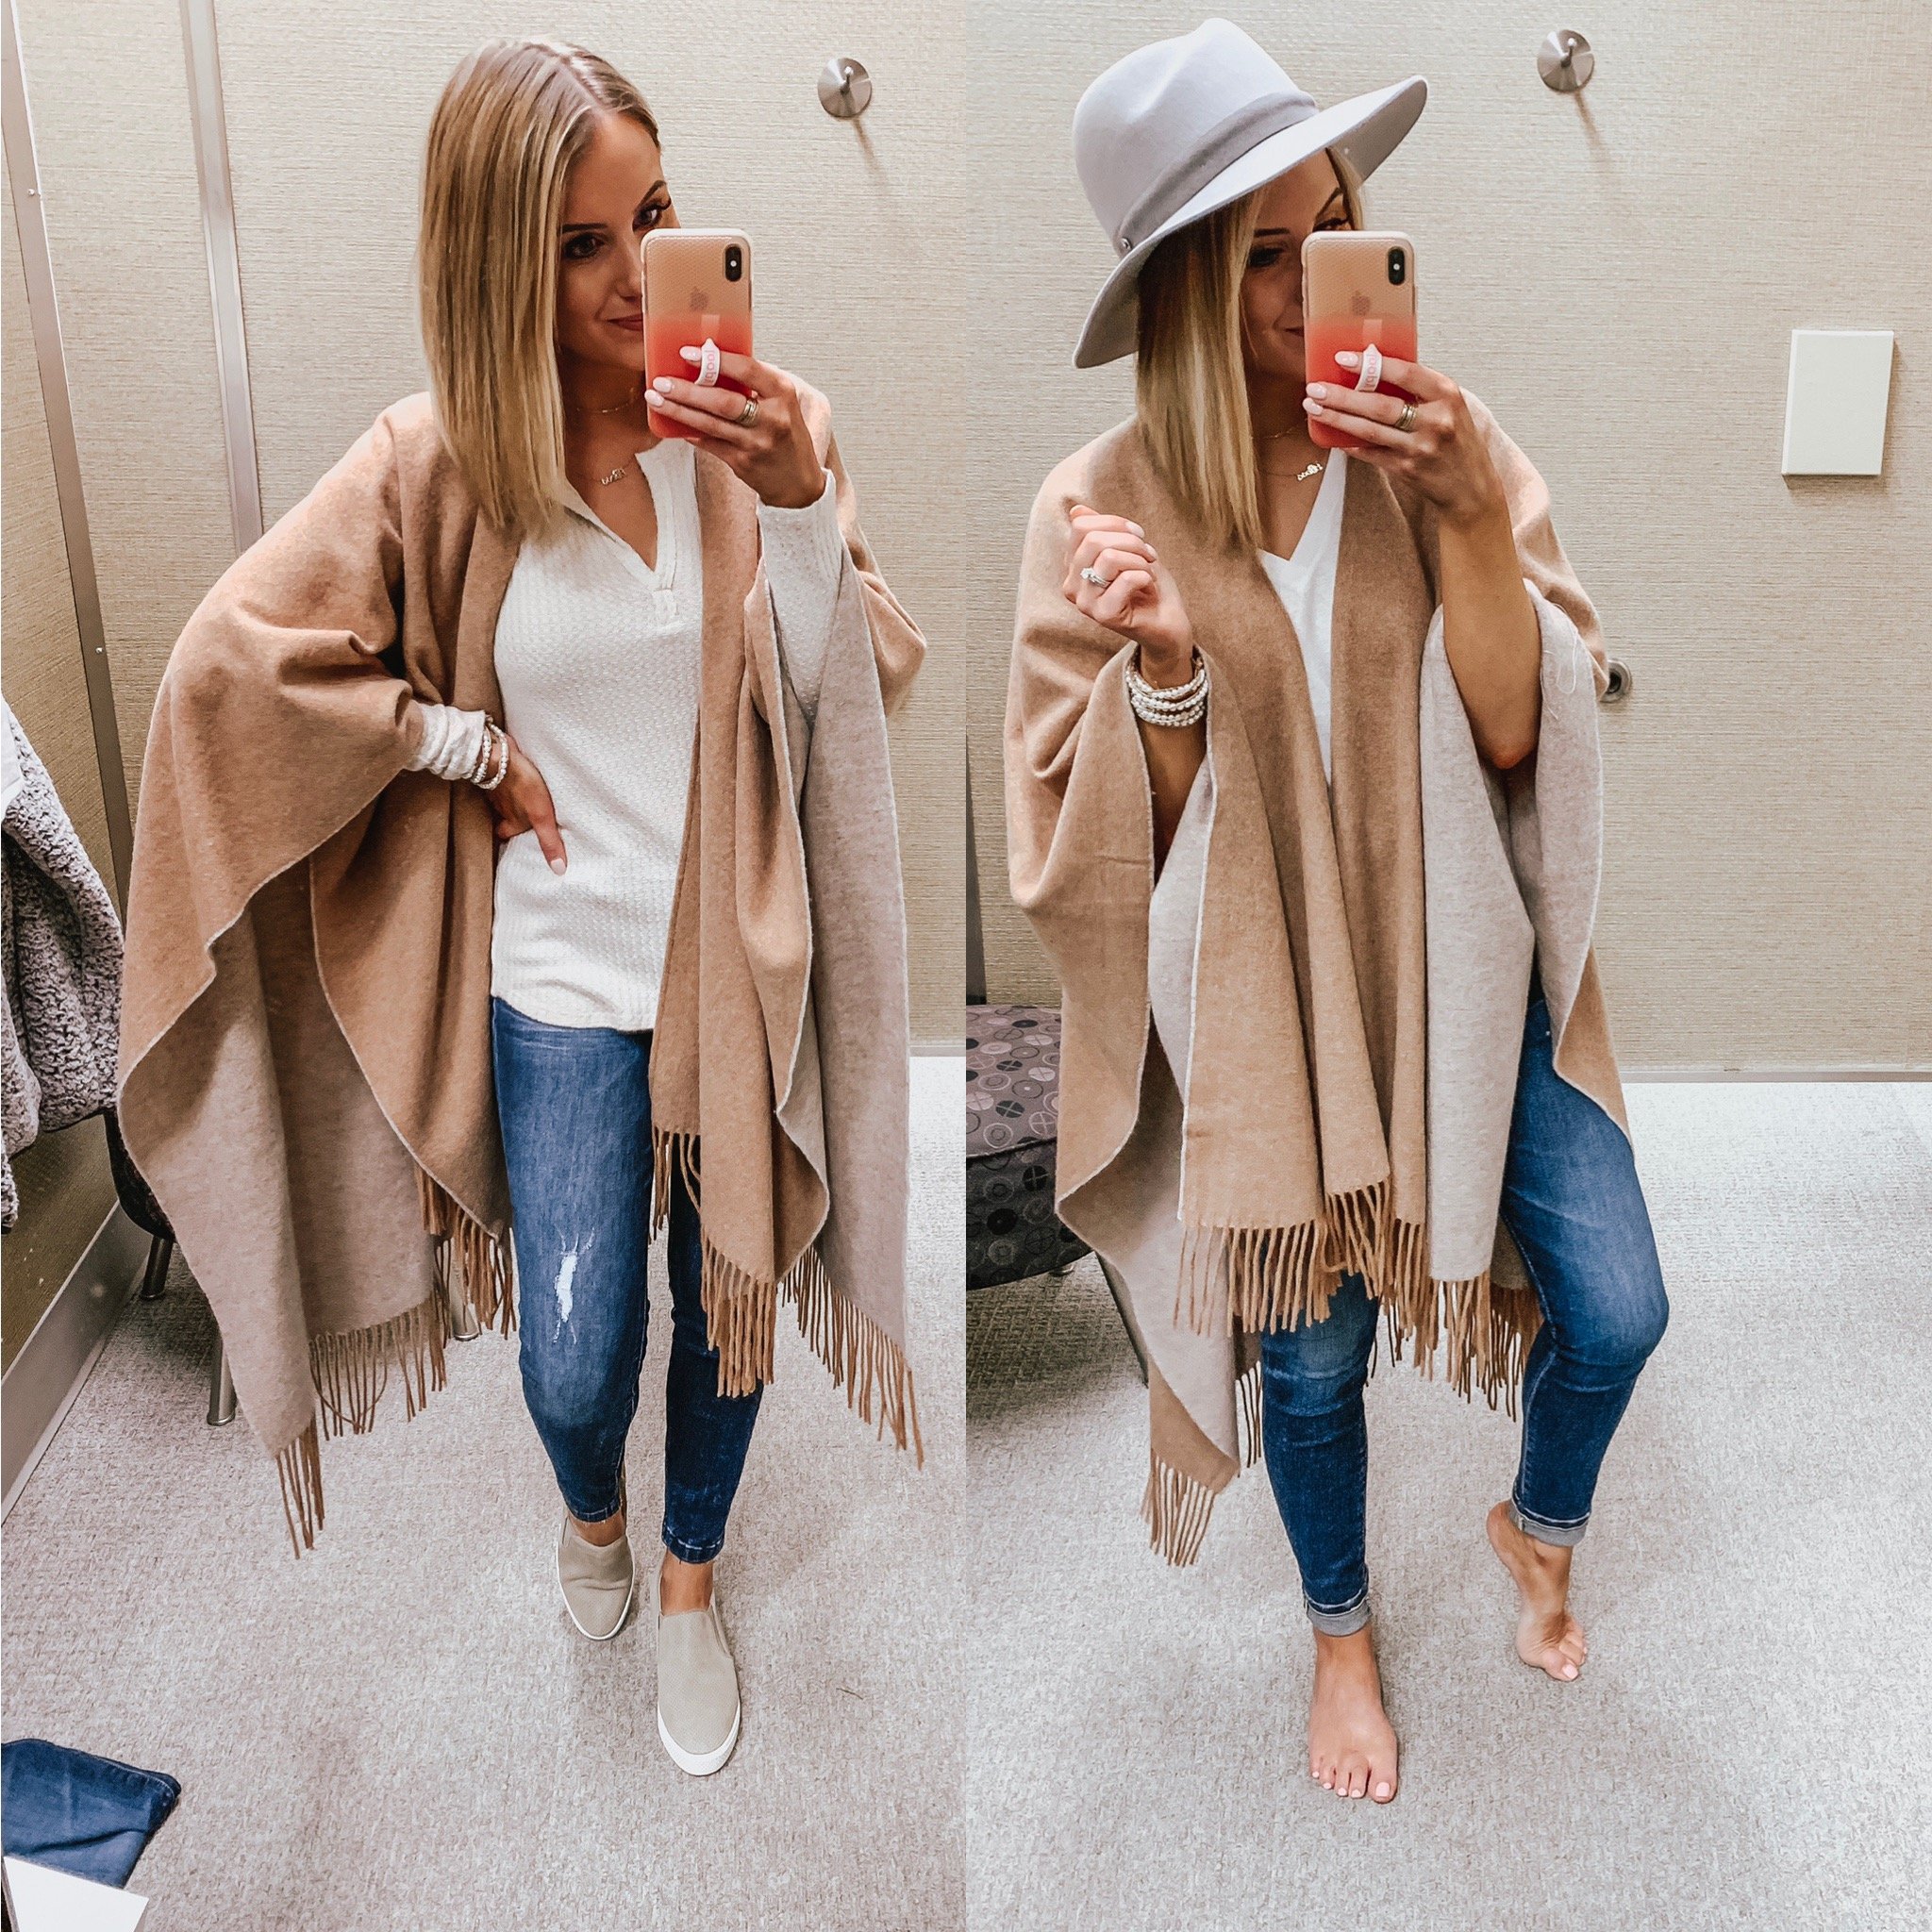 Nordstrom Anniversary Sale Dressing Room Try On! Style Blogger Lauren Meyer shares a Nordstrom Anniversary Sale Dressing Room Try On